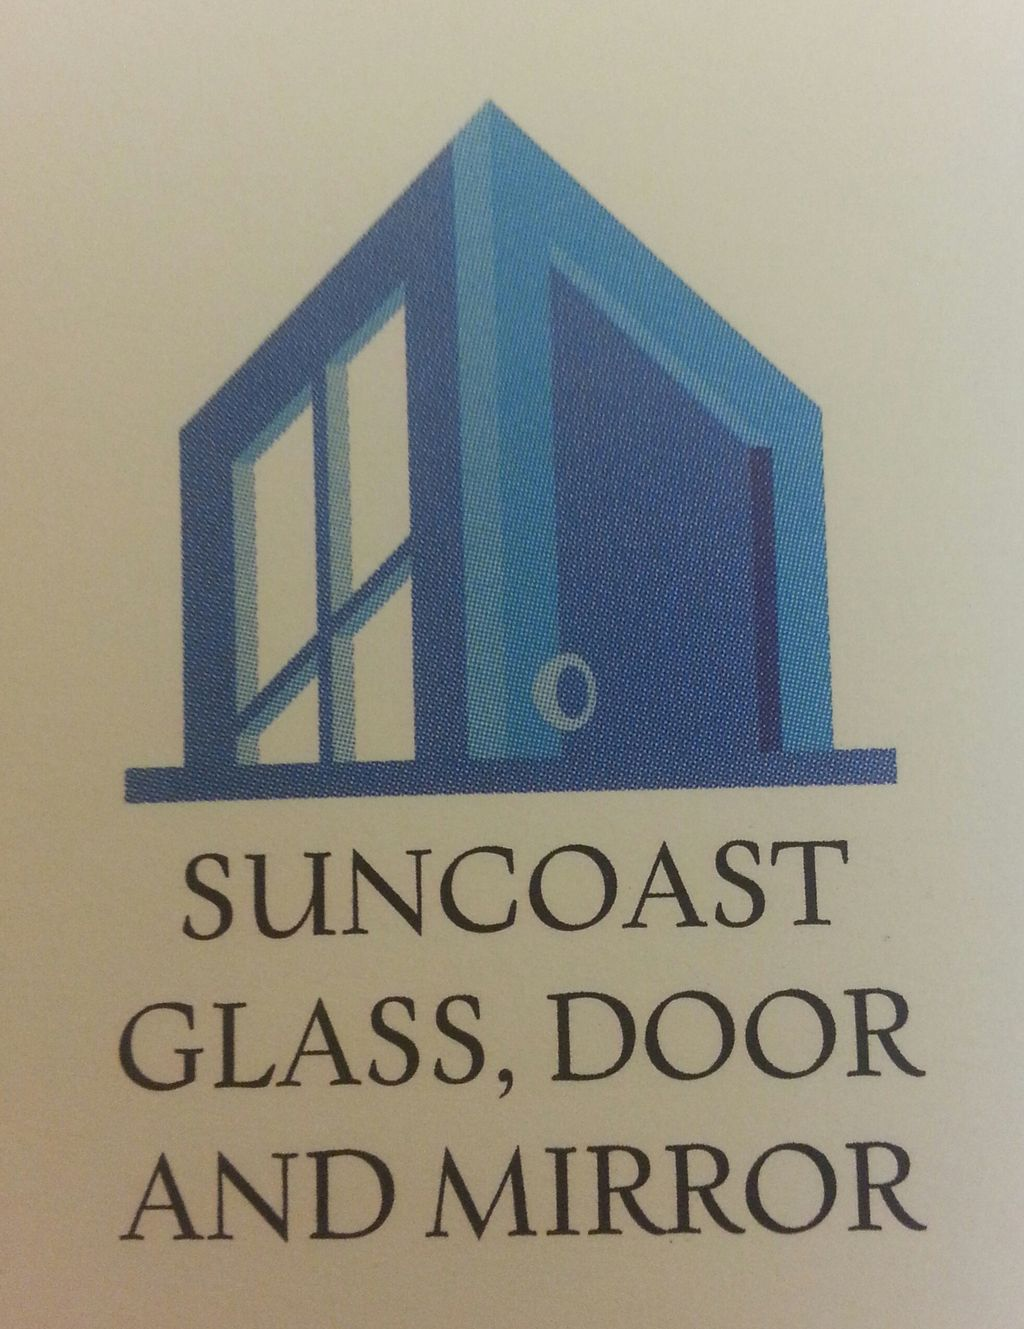 Suncoast Glass, Door and Mirror